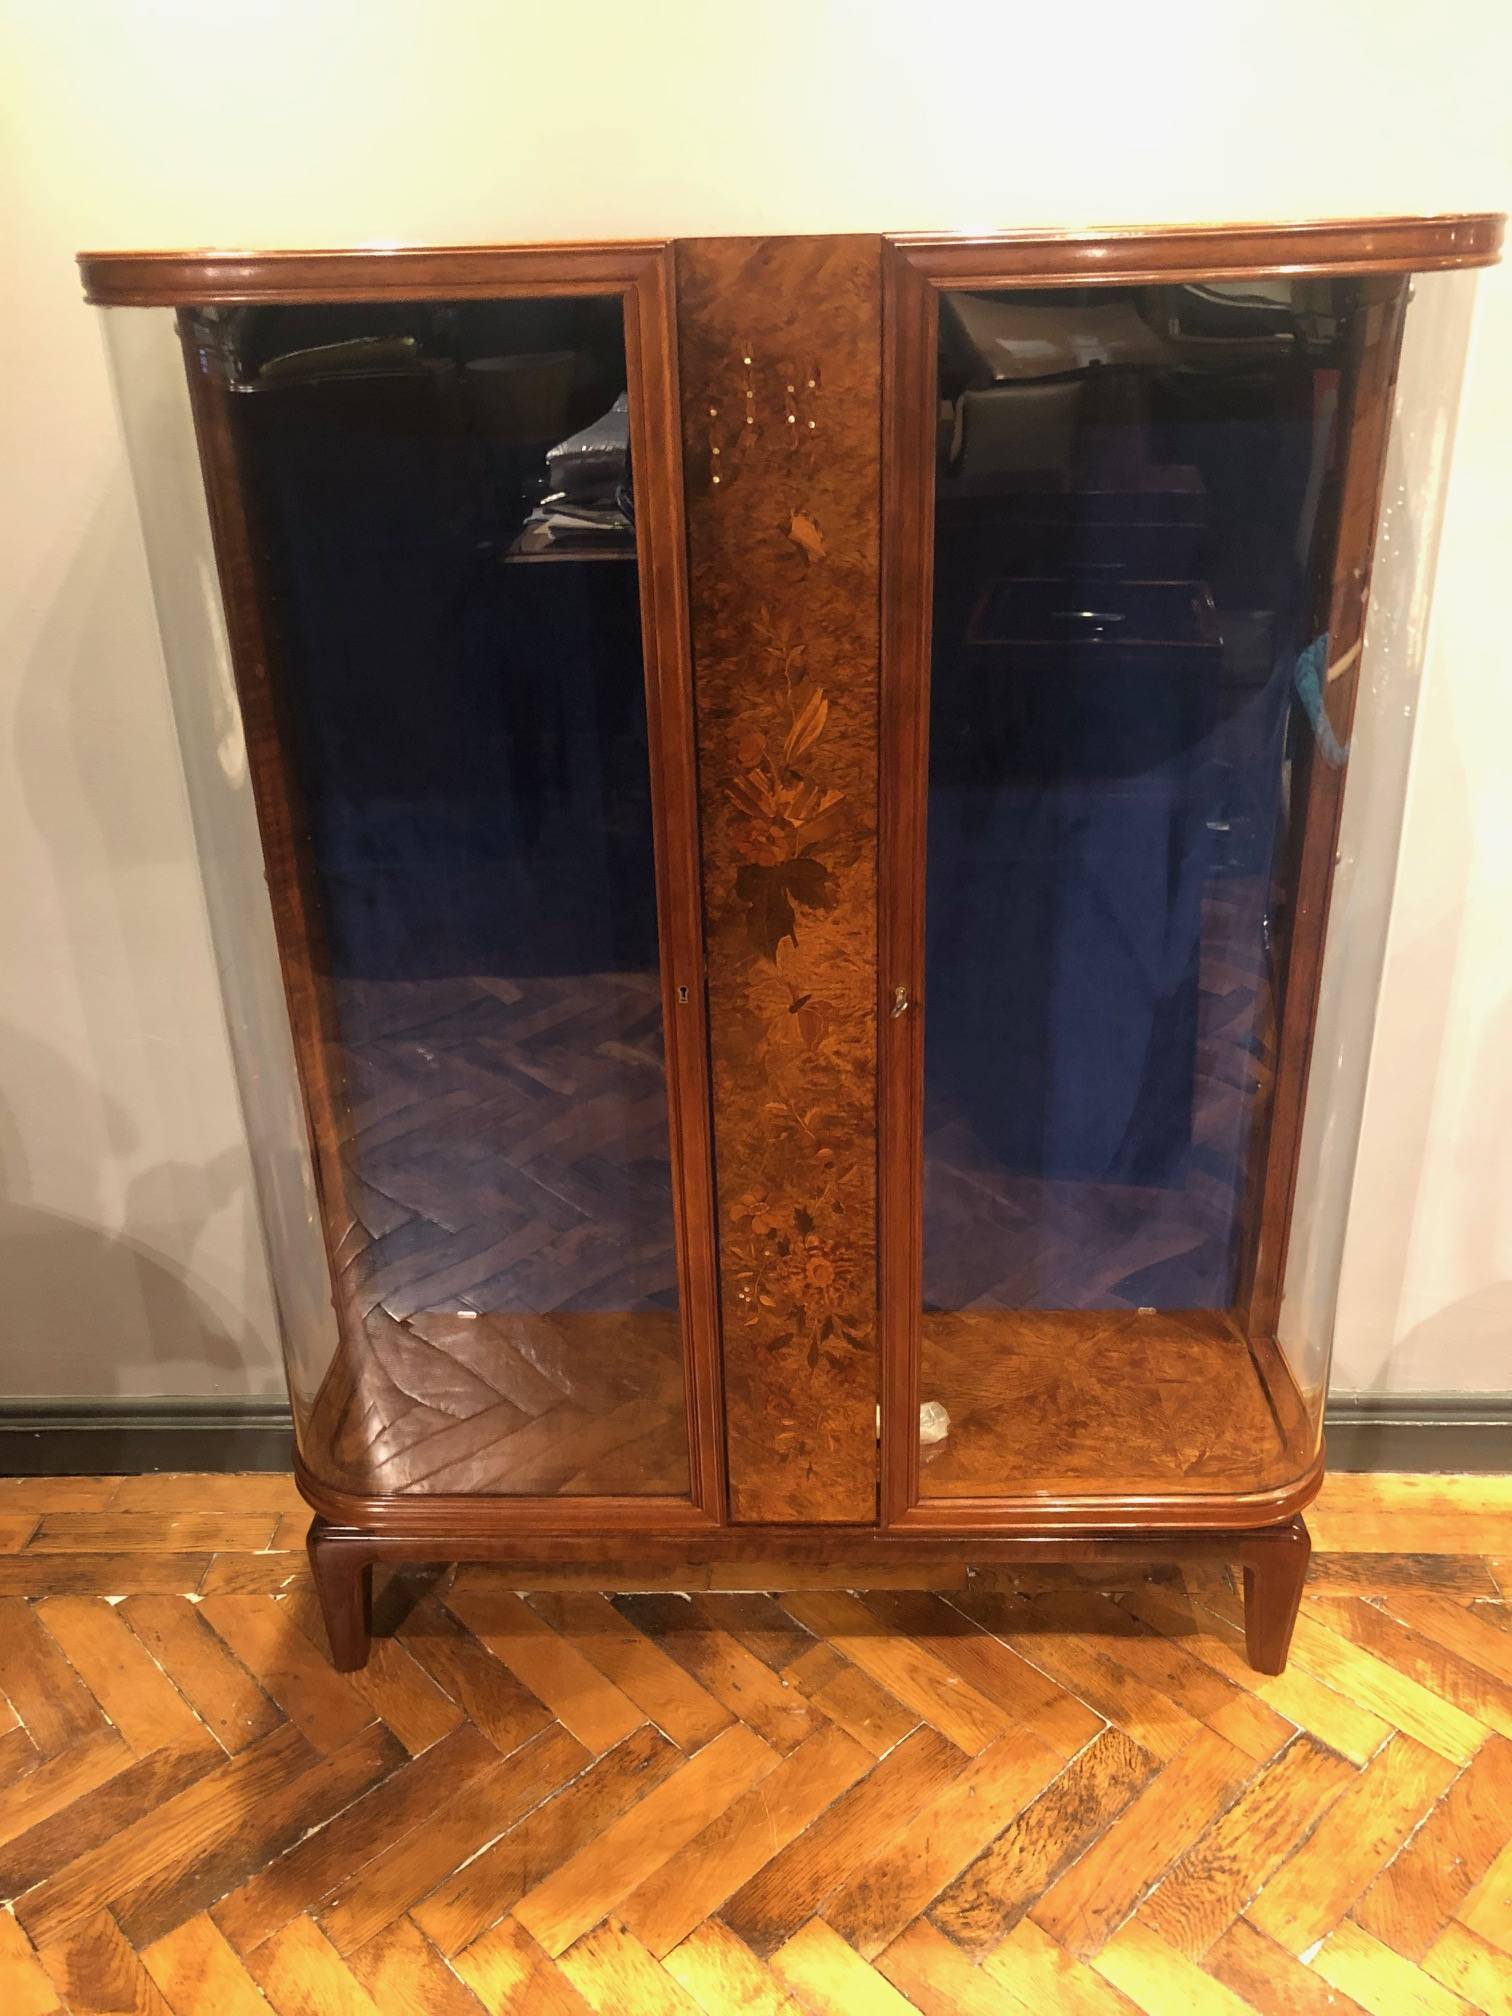 STUNNING AMBOYNA DISPLAY CABINET IN THE HIGH ART DECO STYLE